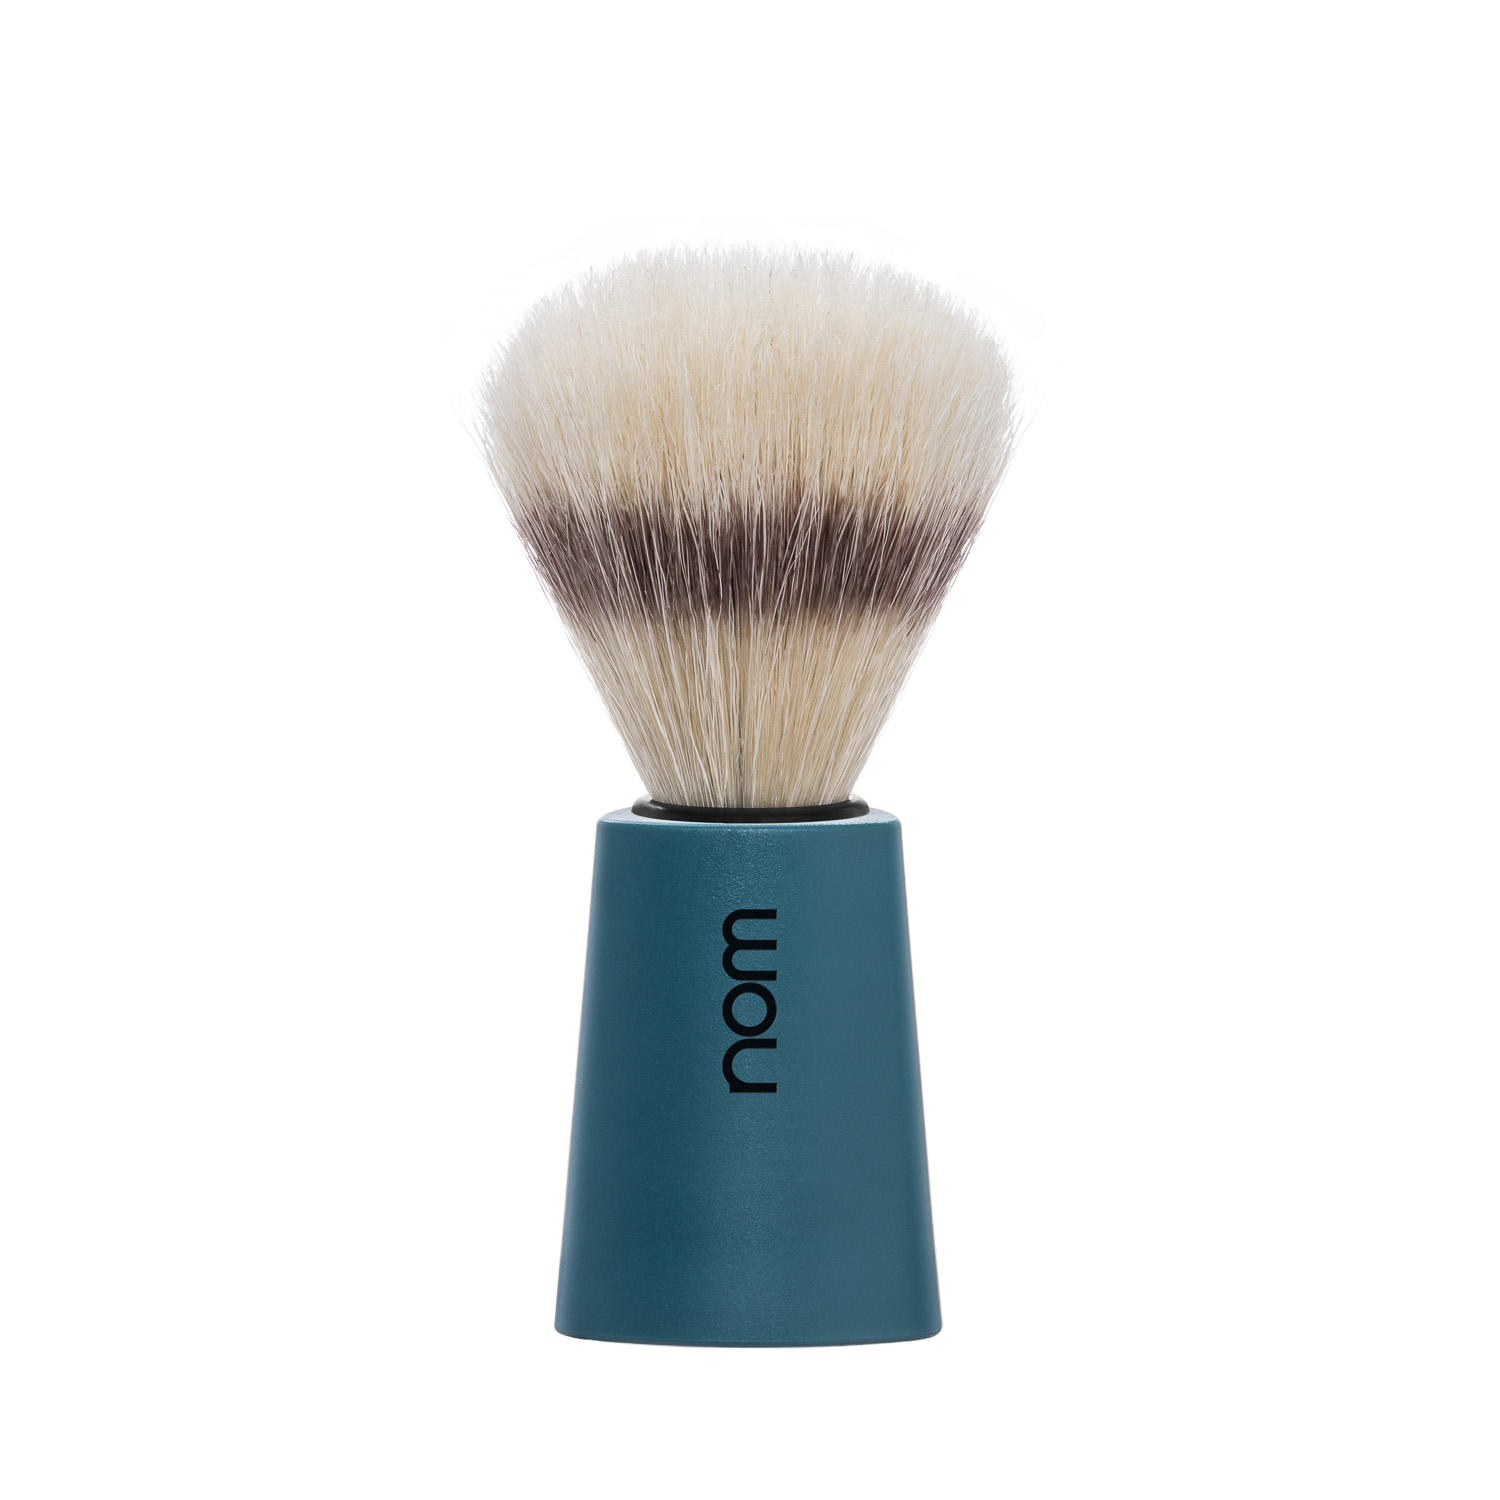 CARL41PE NOM, CARL in petrol, pure bristle shaving brush